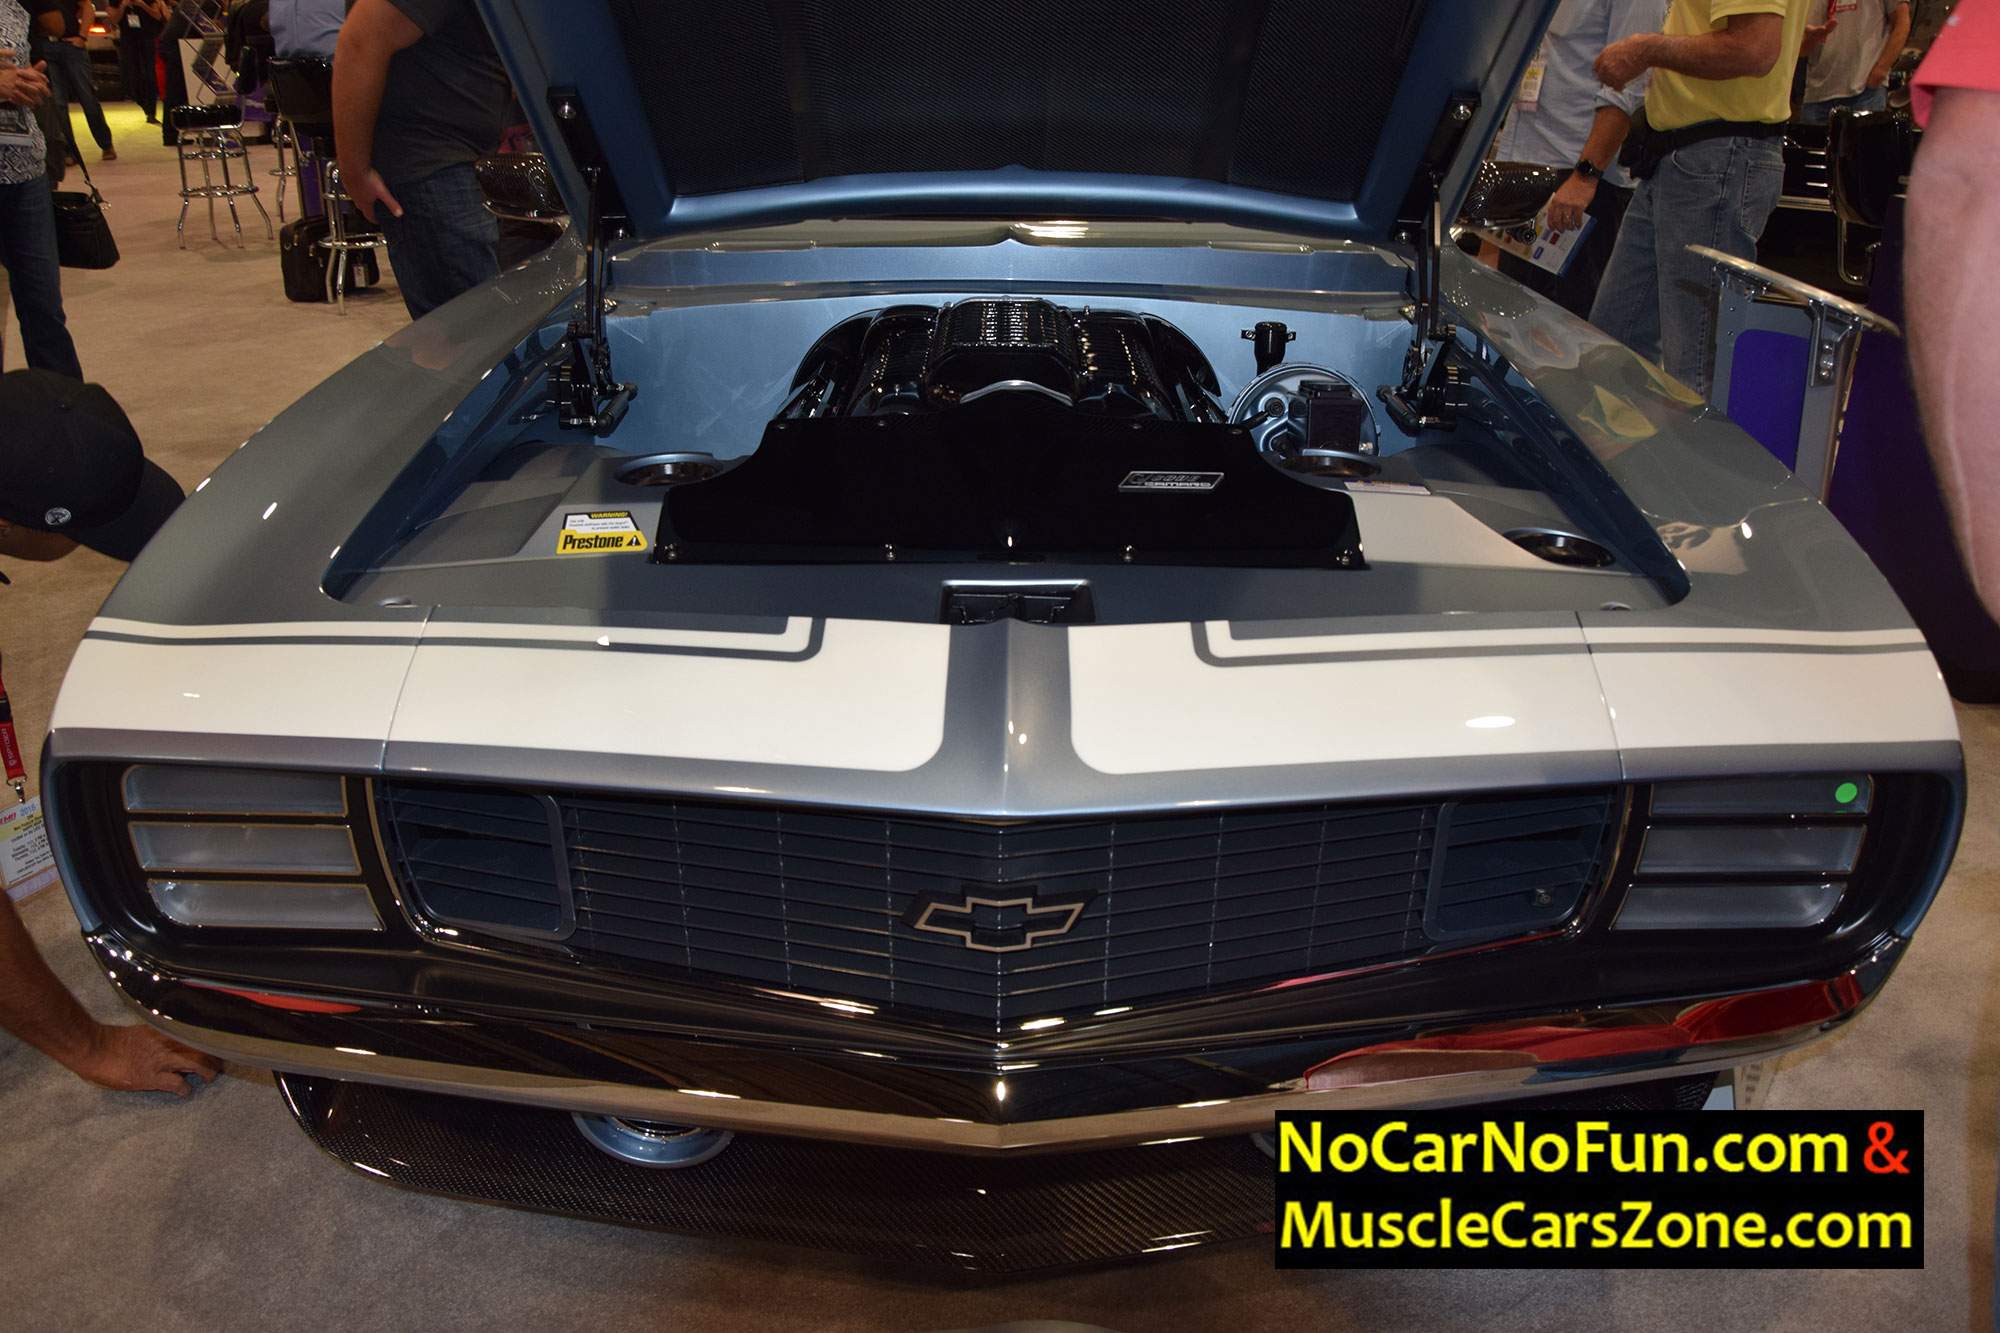 Musclecarszone.com Presents You The Very Best Rides Of The SEMA Show ...